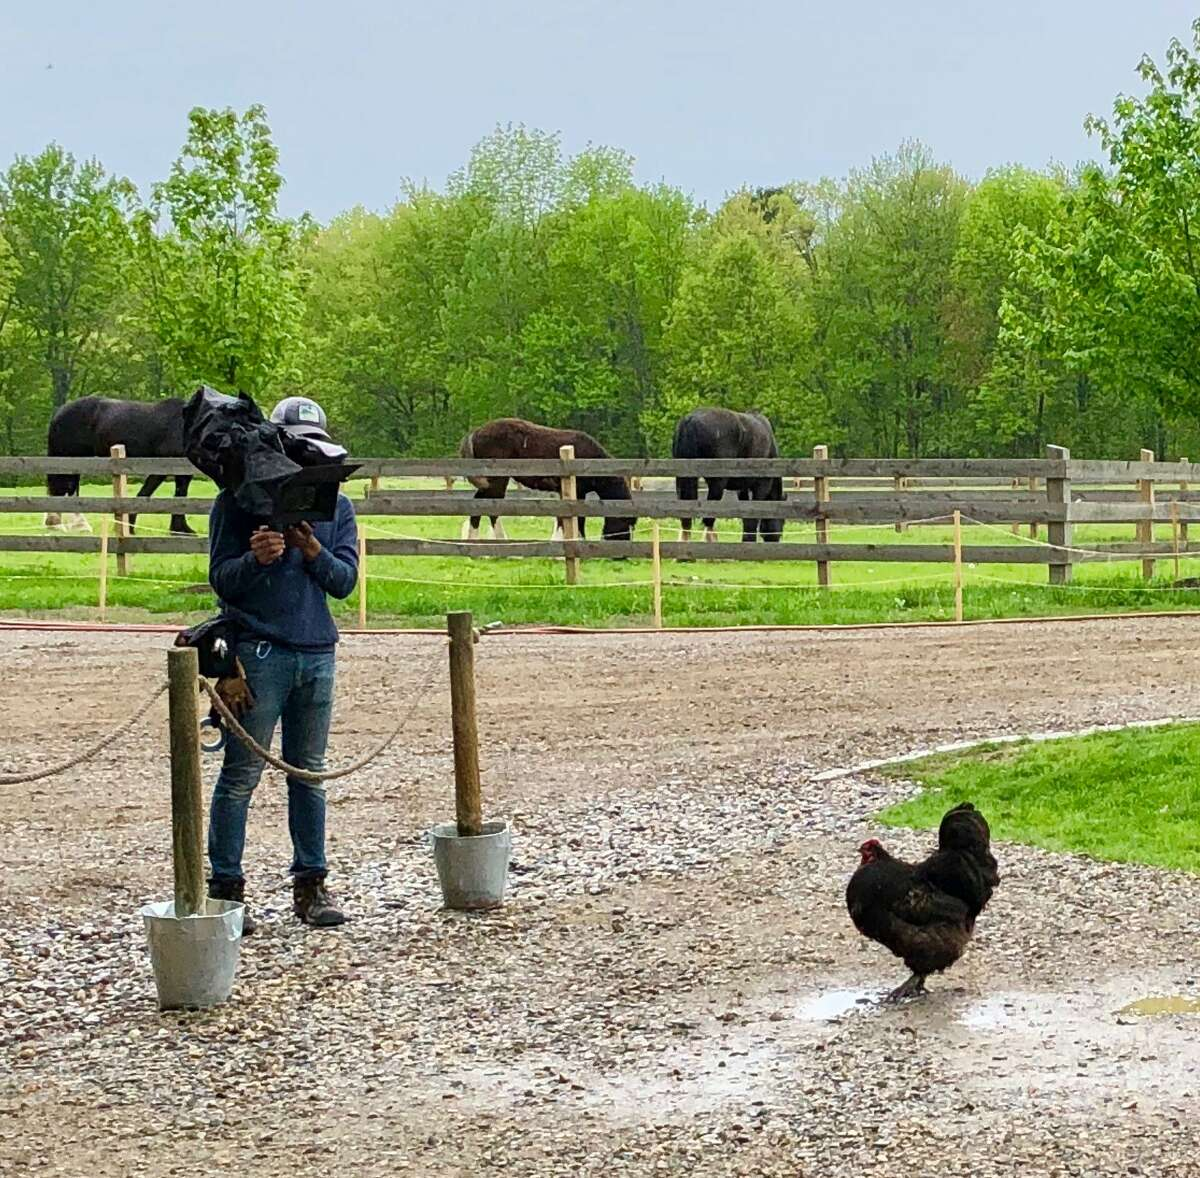 Cameraman and chicken during shooting at June Farms for